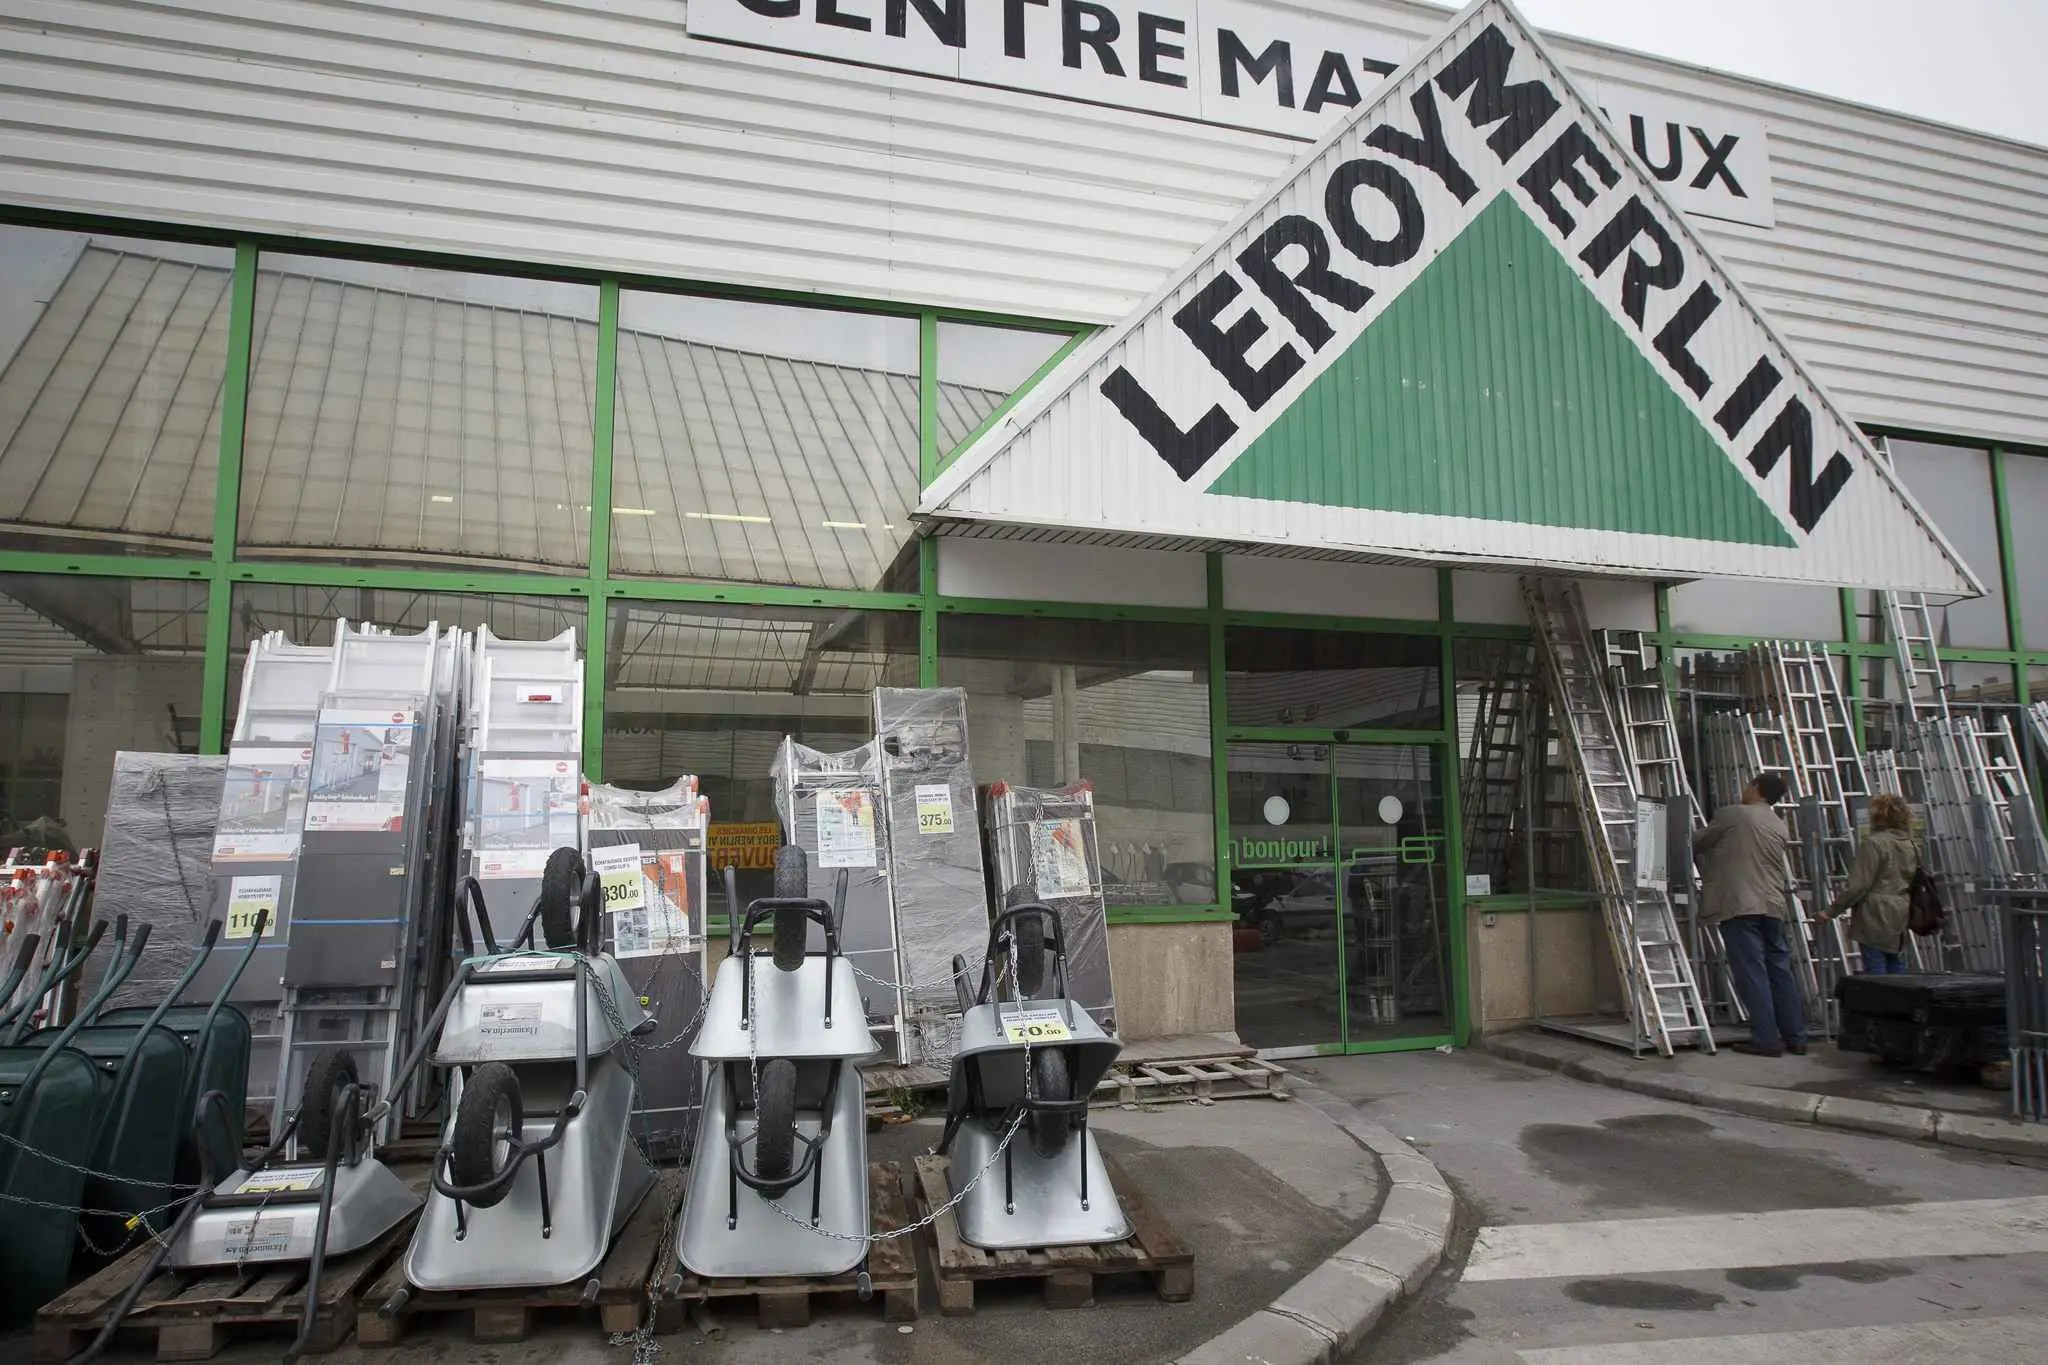 Leroy Merlin Nice Ouvert Dimanche Magasin Leroy Merlin Leroy Merlin Teste Le Click And Collect Le